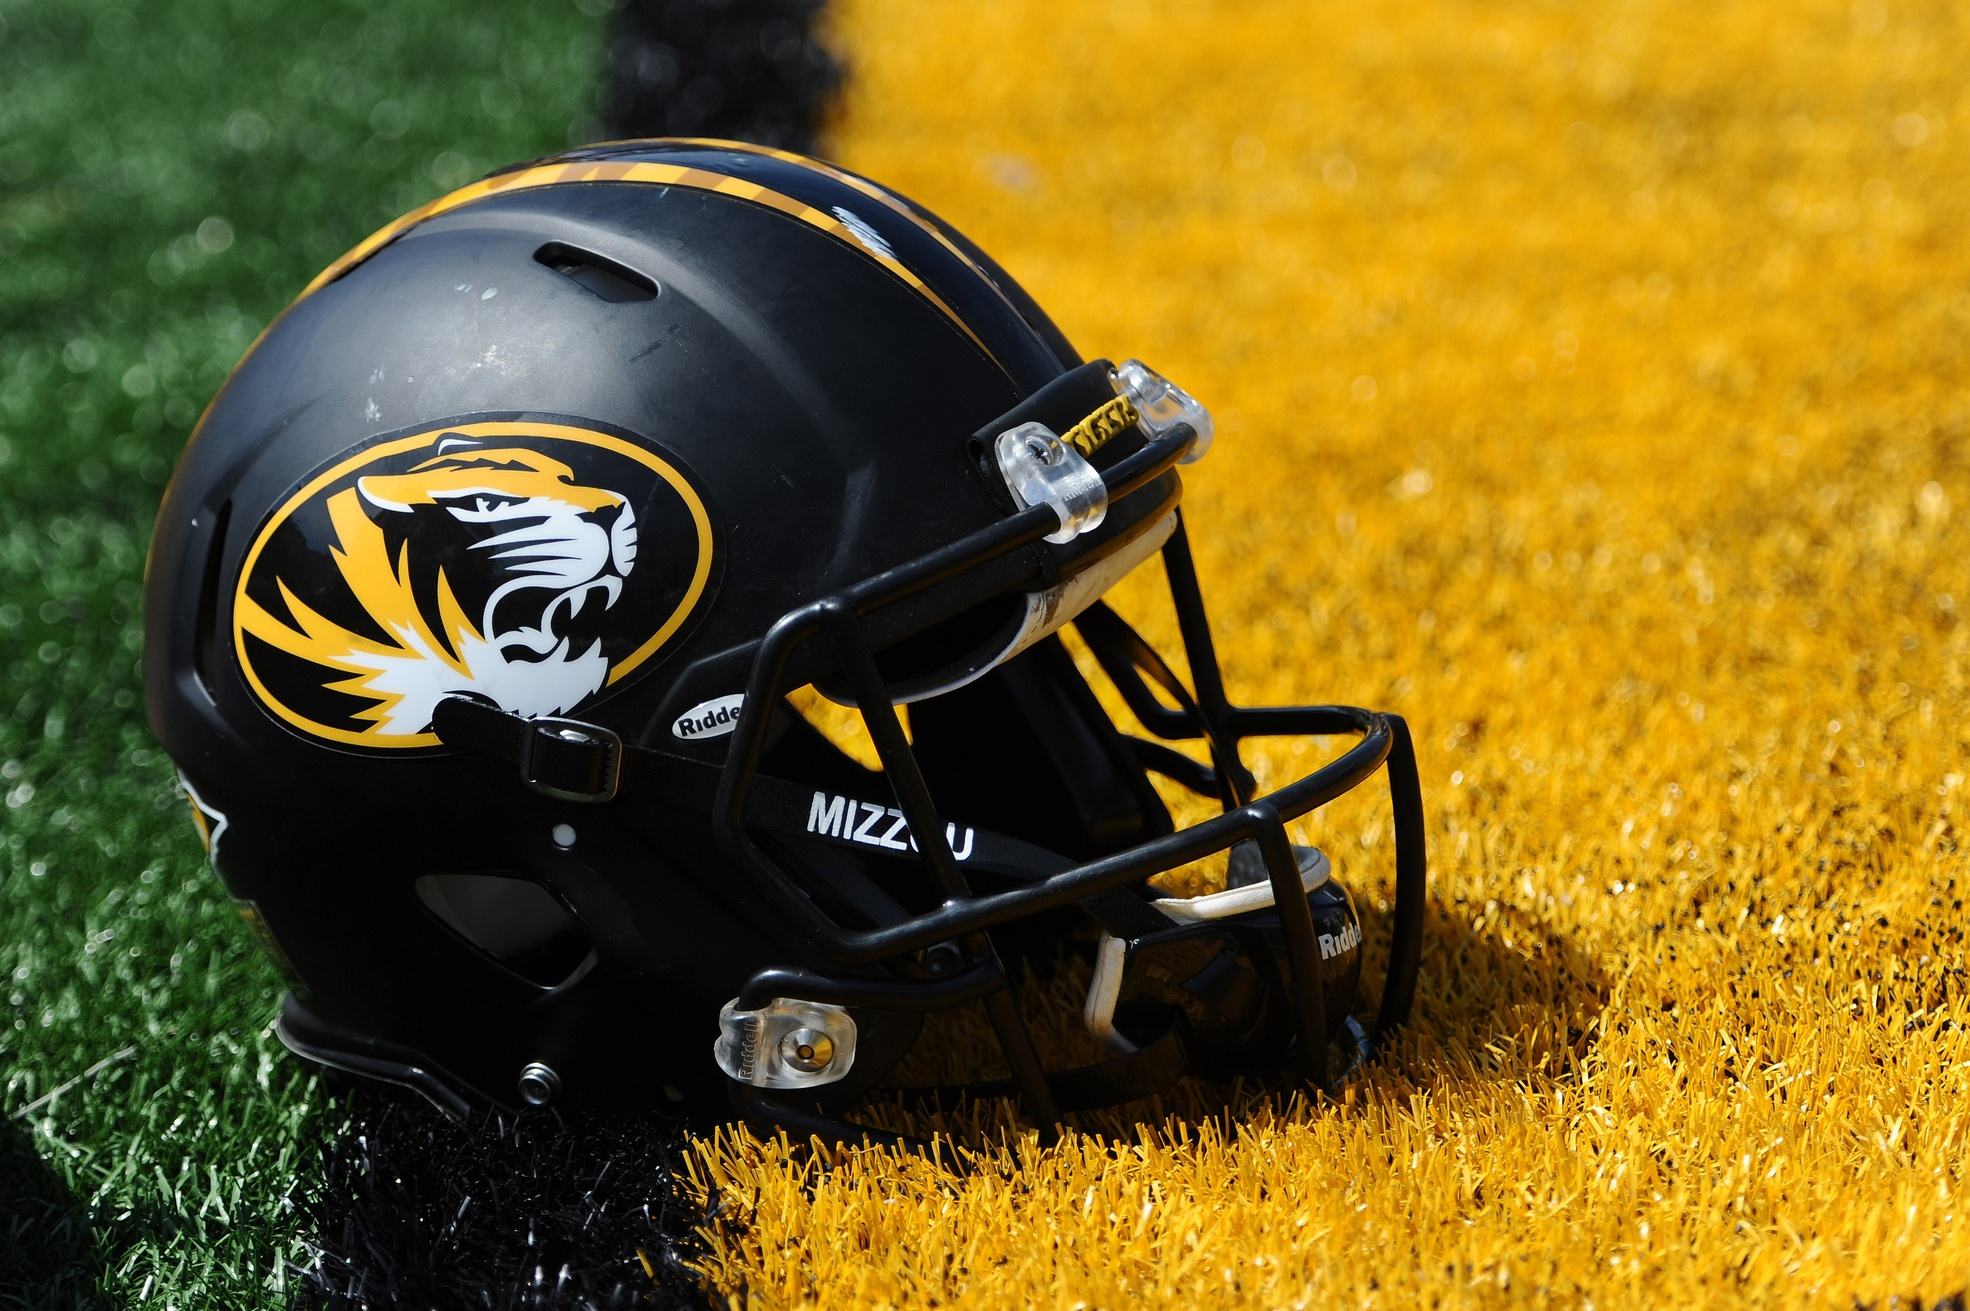 Photo: Mizzou recruit wearing what appears to be a new ...